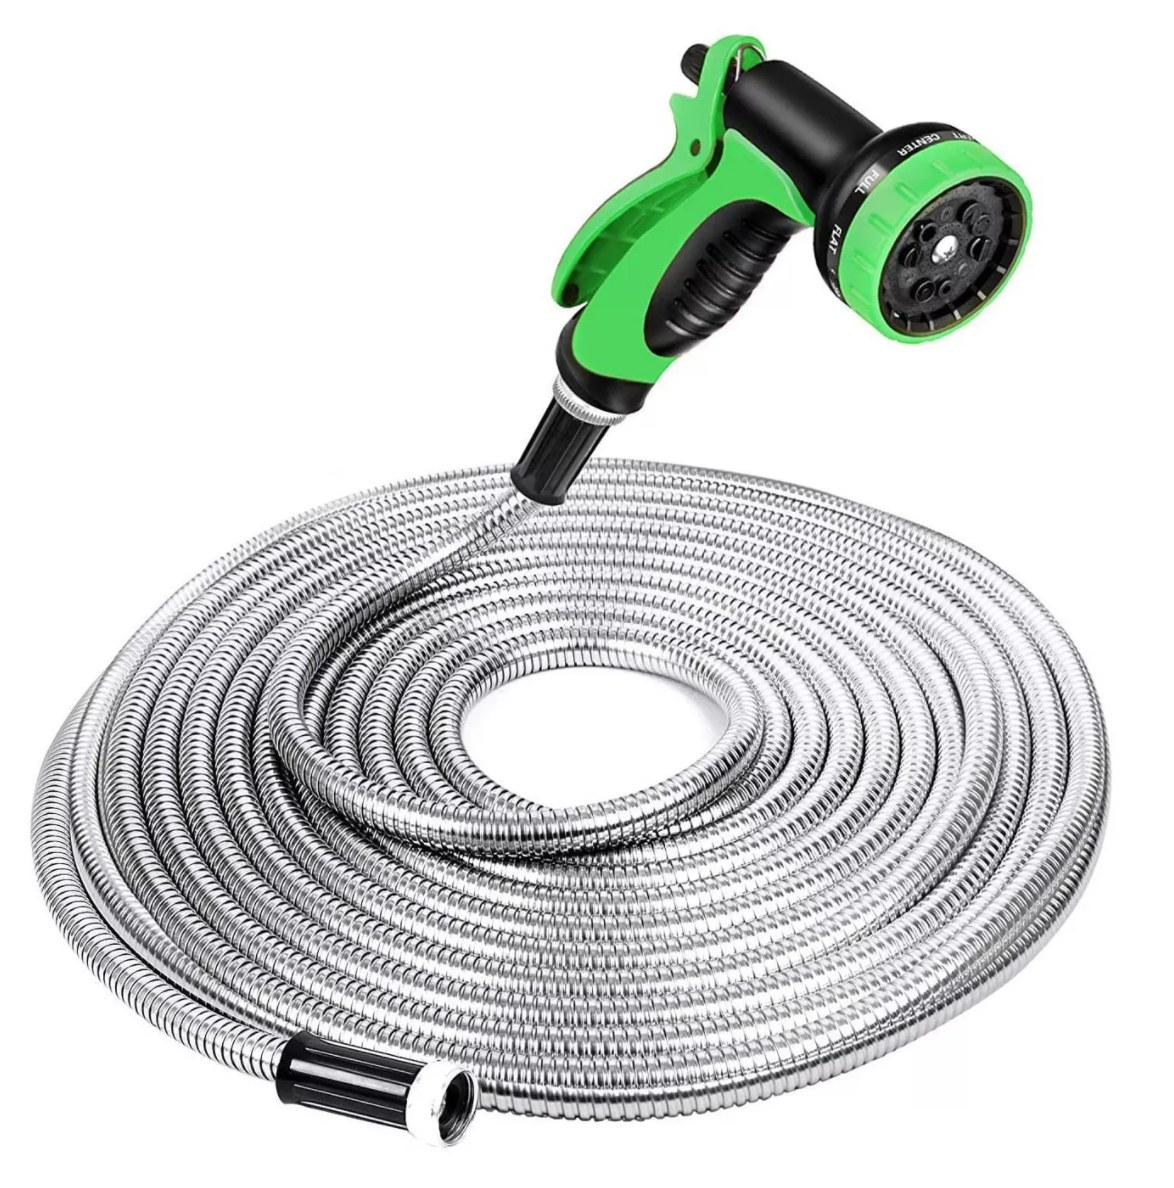 A long silver-looking hose with a green and black nozzle